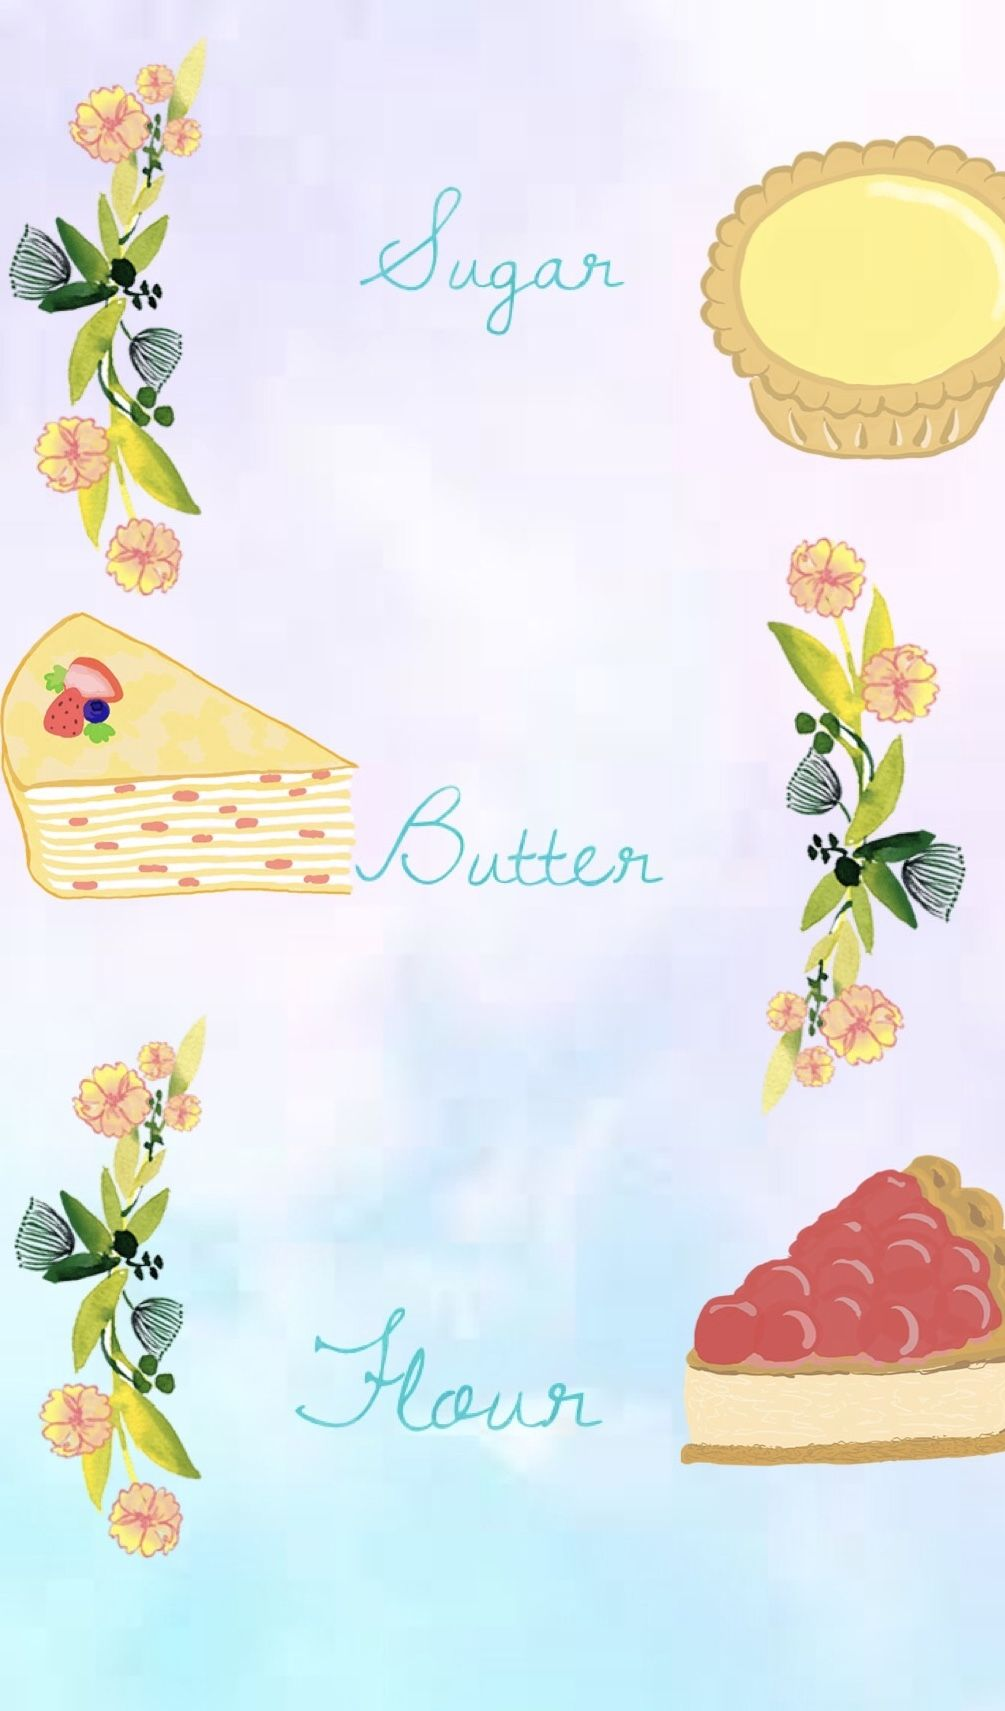 iPhone wallpaper Made by Dodie Fozter.